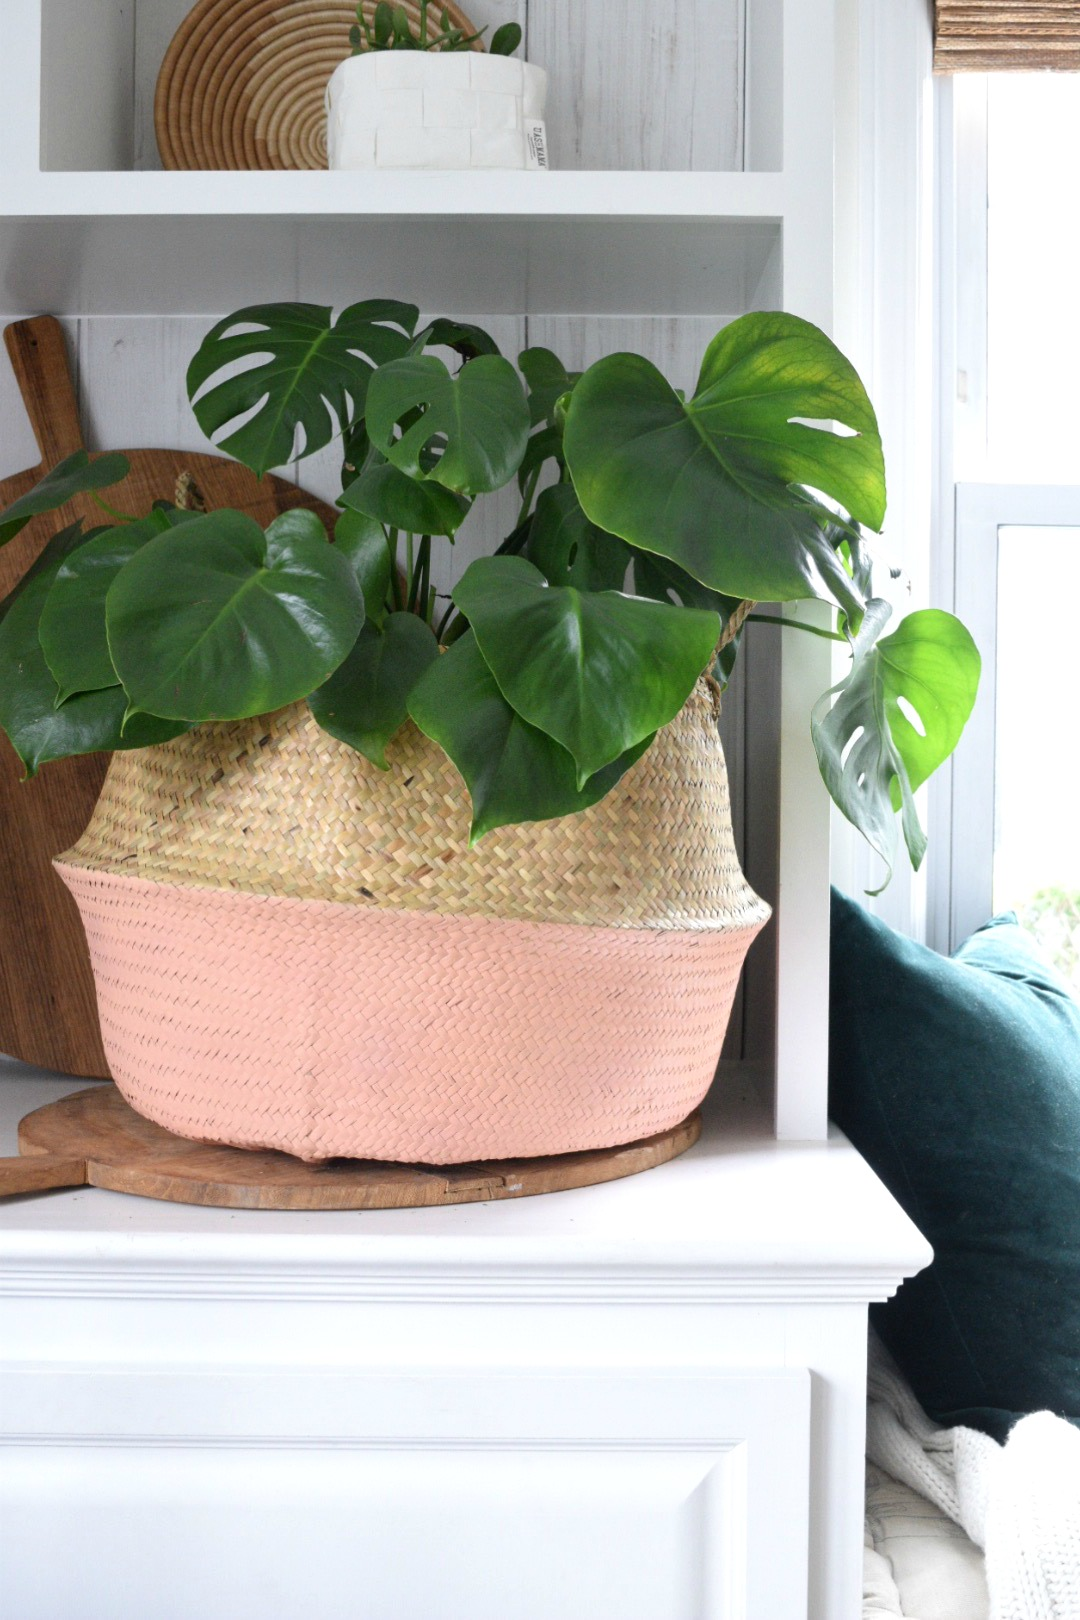 Favorite Home Decor Things- Baskets for Houseplants and Tips!